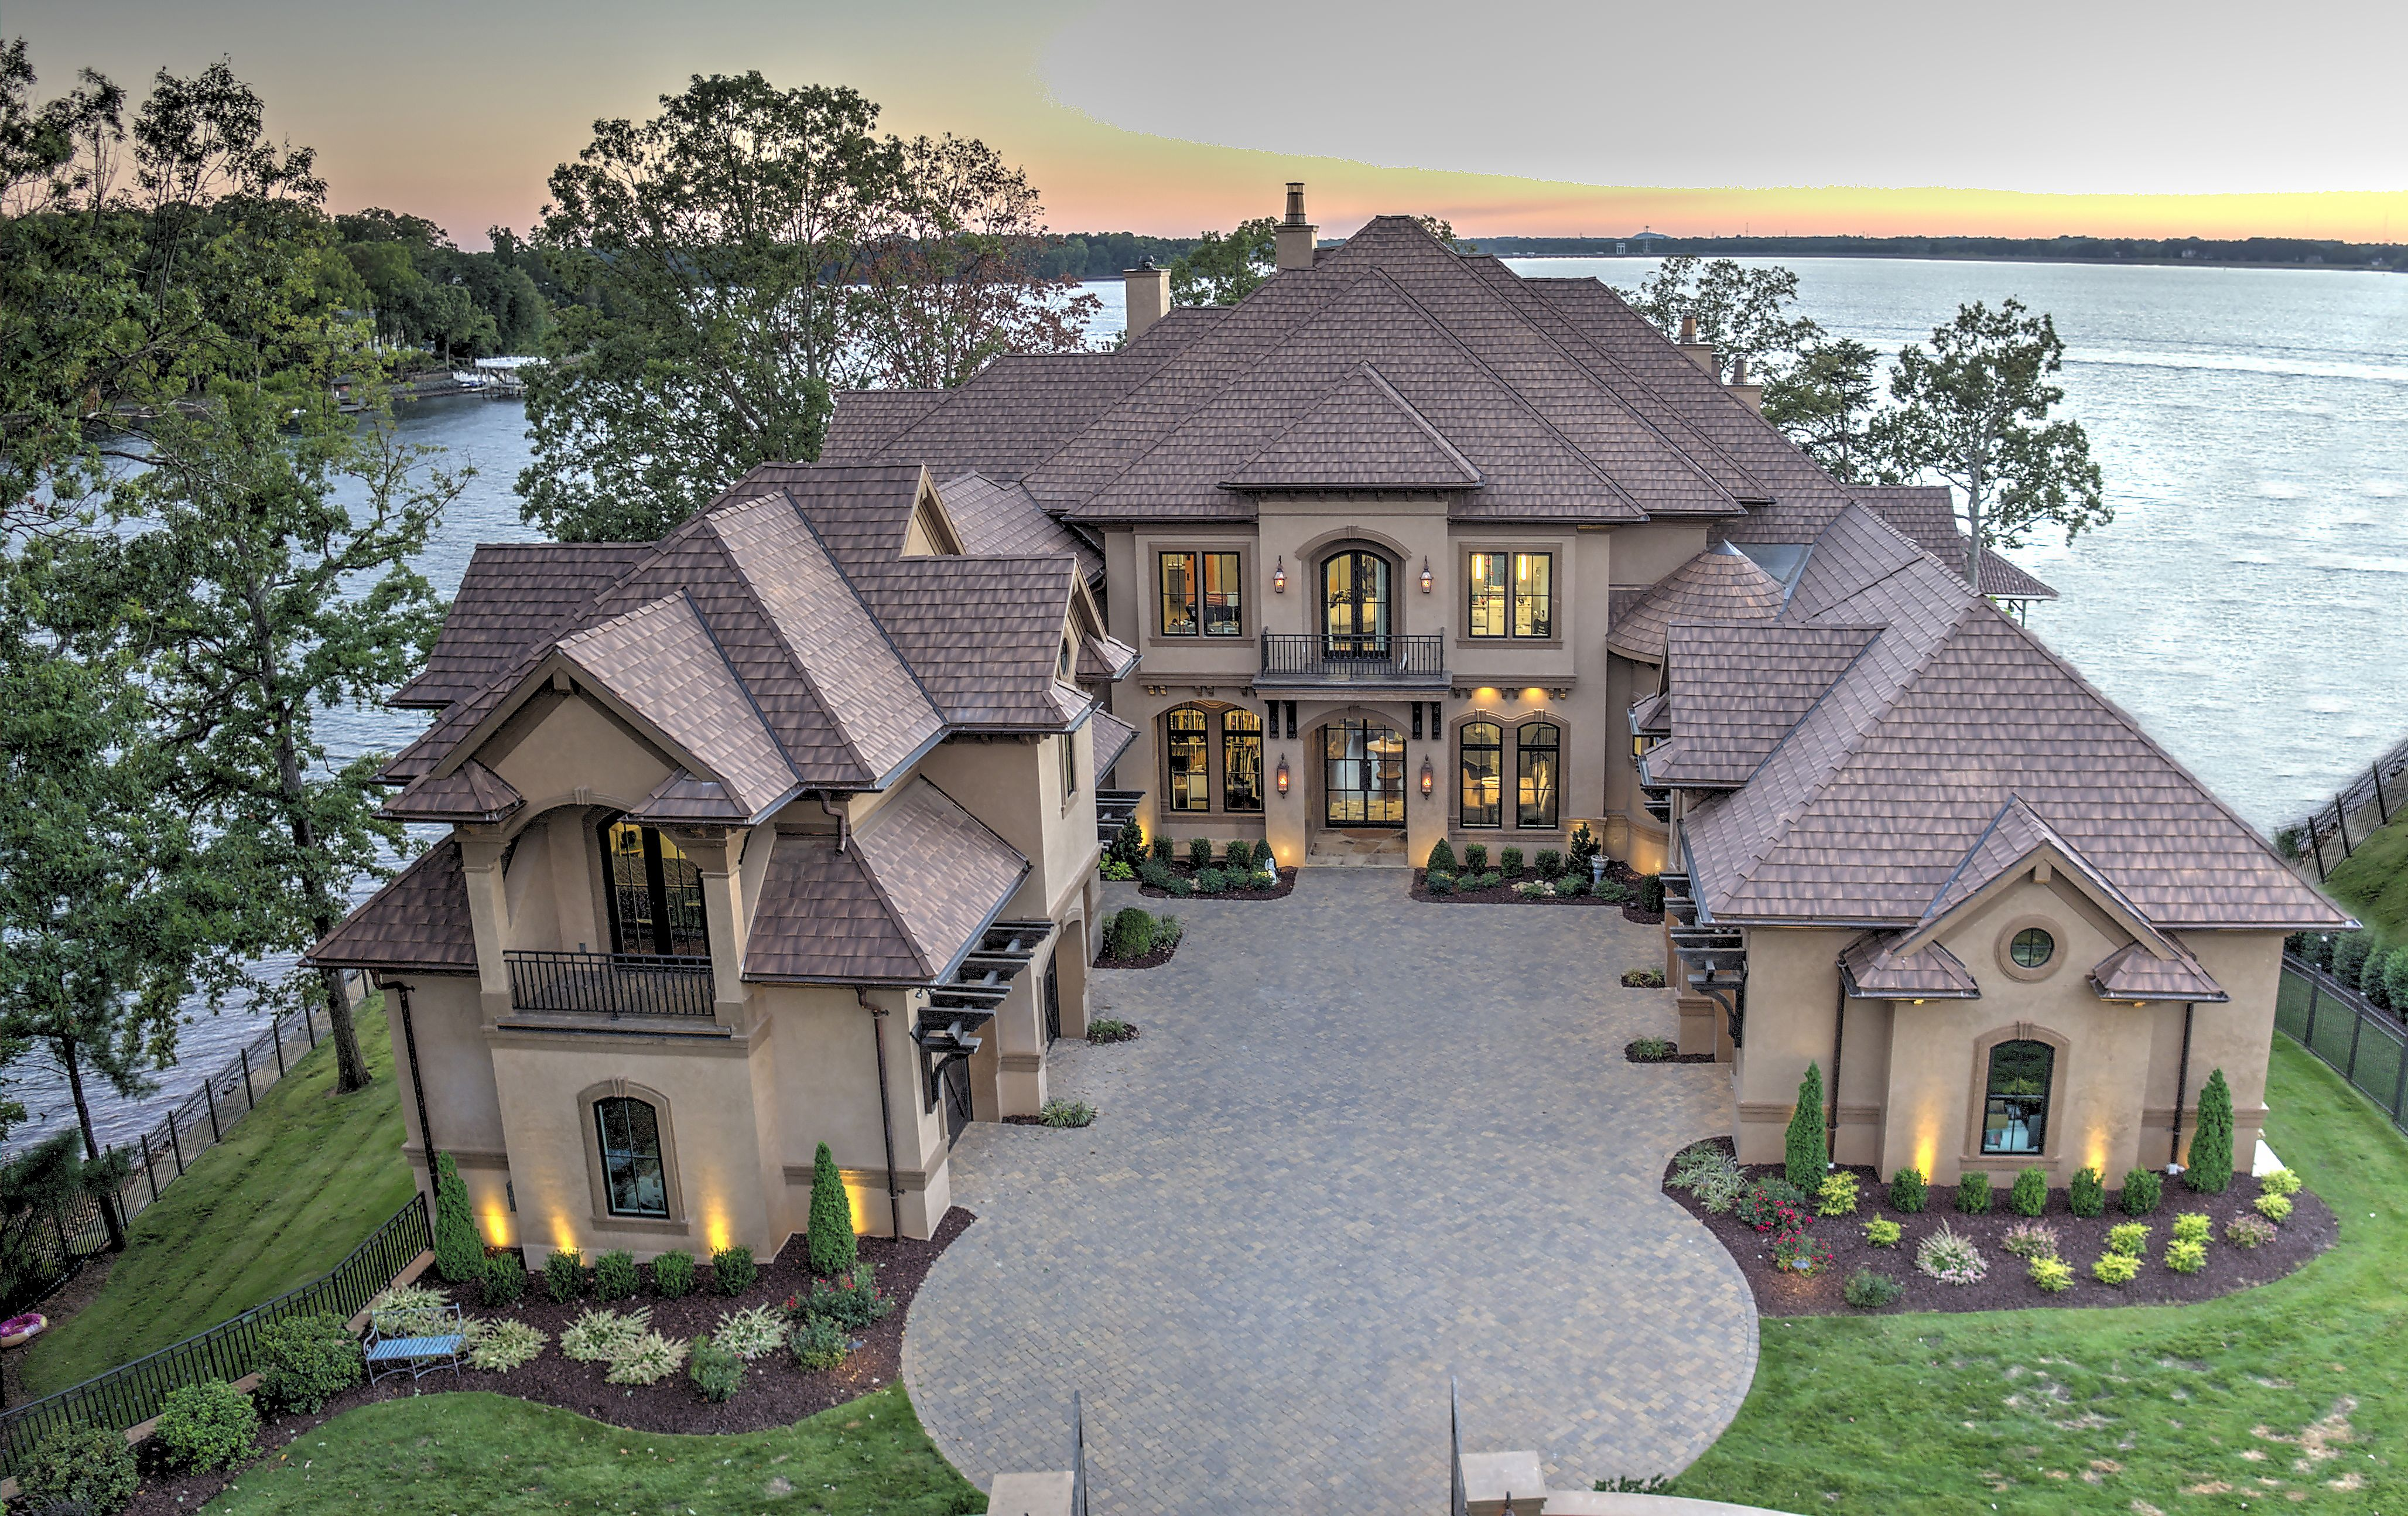 Lakeside Hideaway Custom Waterfront Home Design Naples Fl Lake Houses Exterior Mansions Lakefront Homes